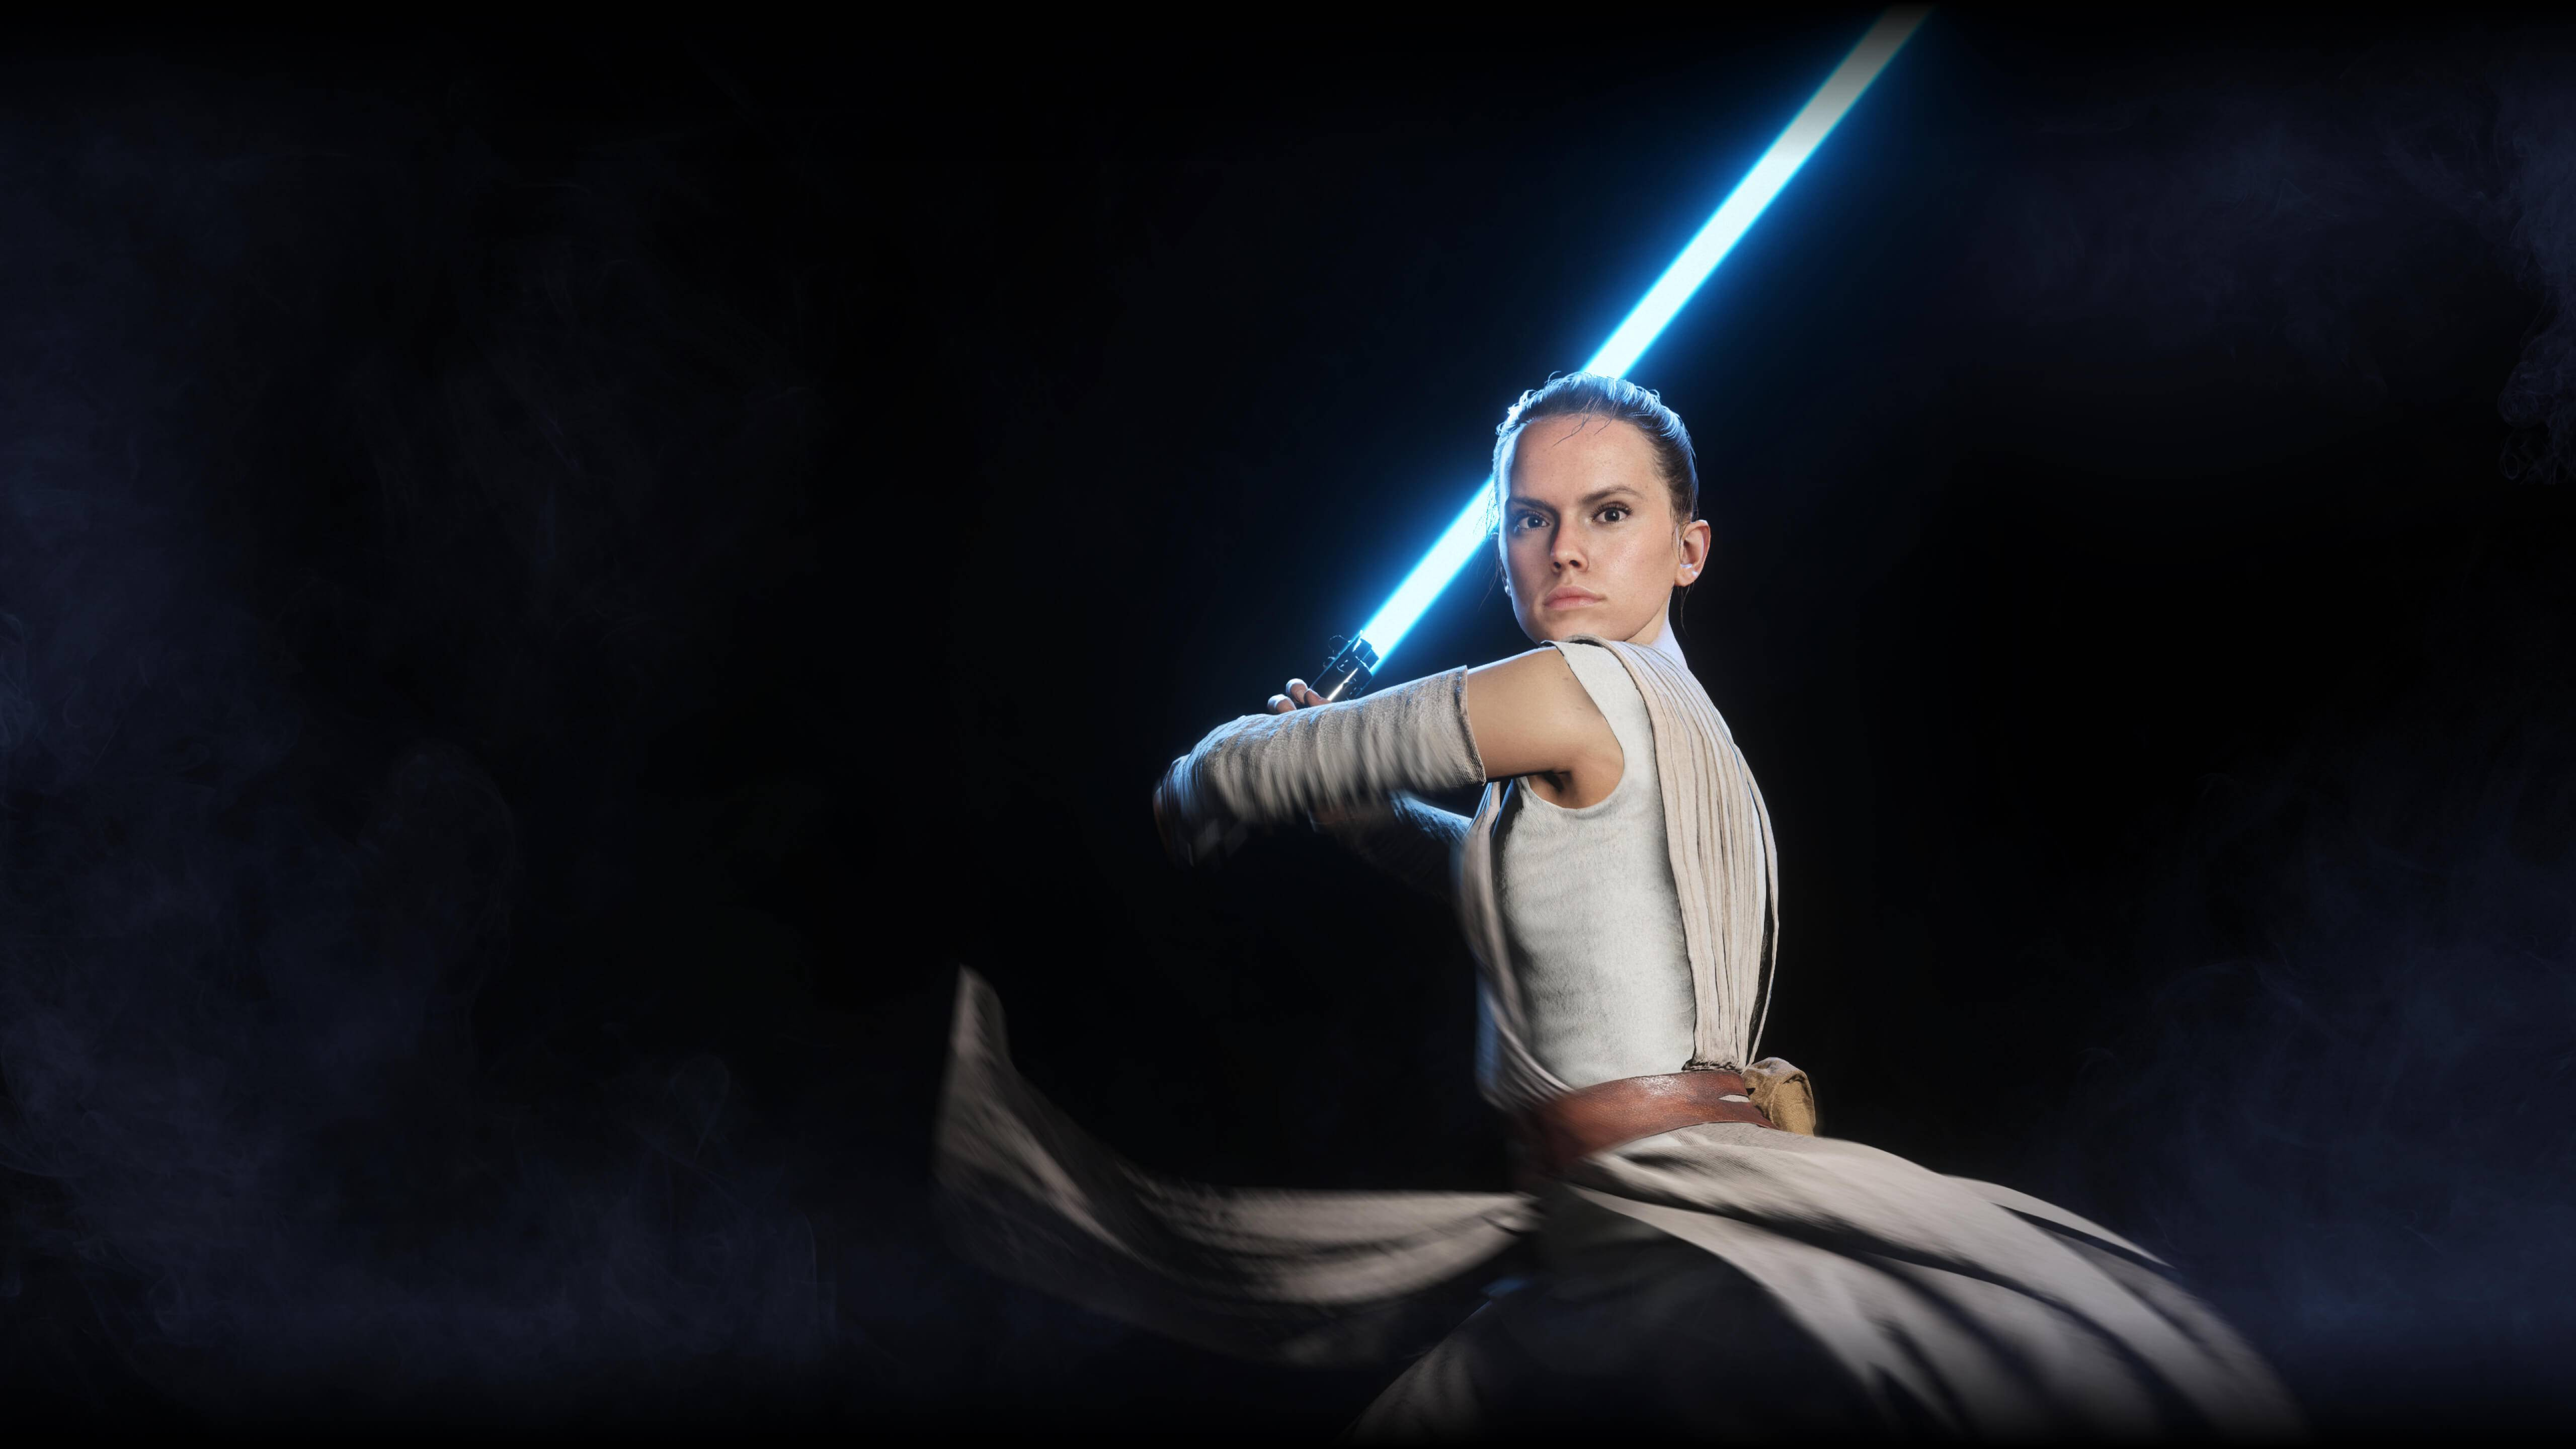 Rey Star Wars Battlefront Ii Wallpaper